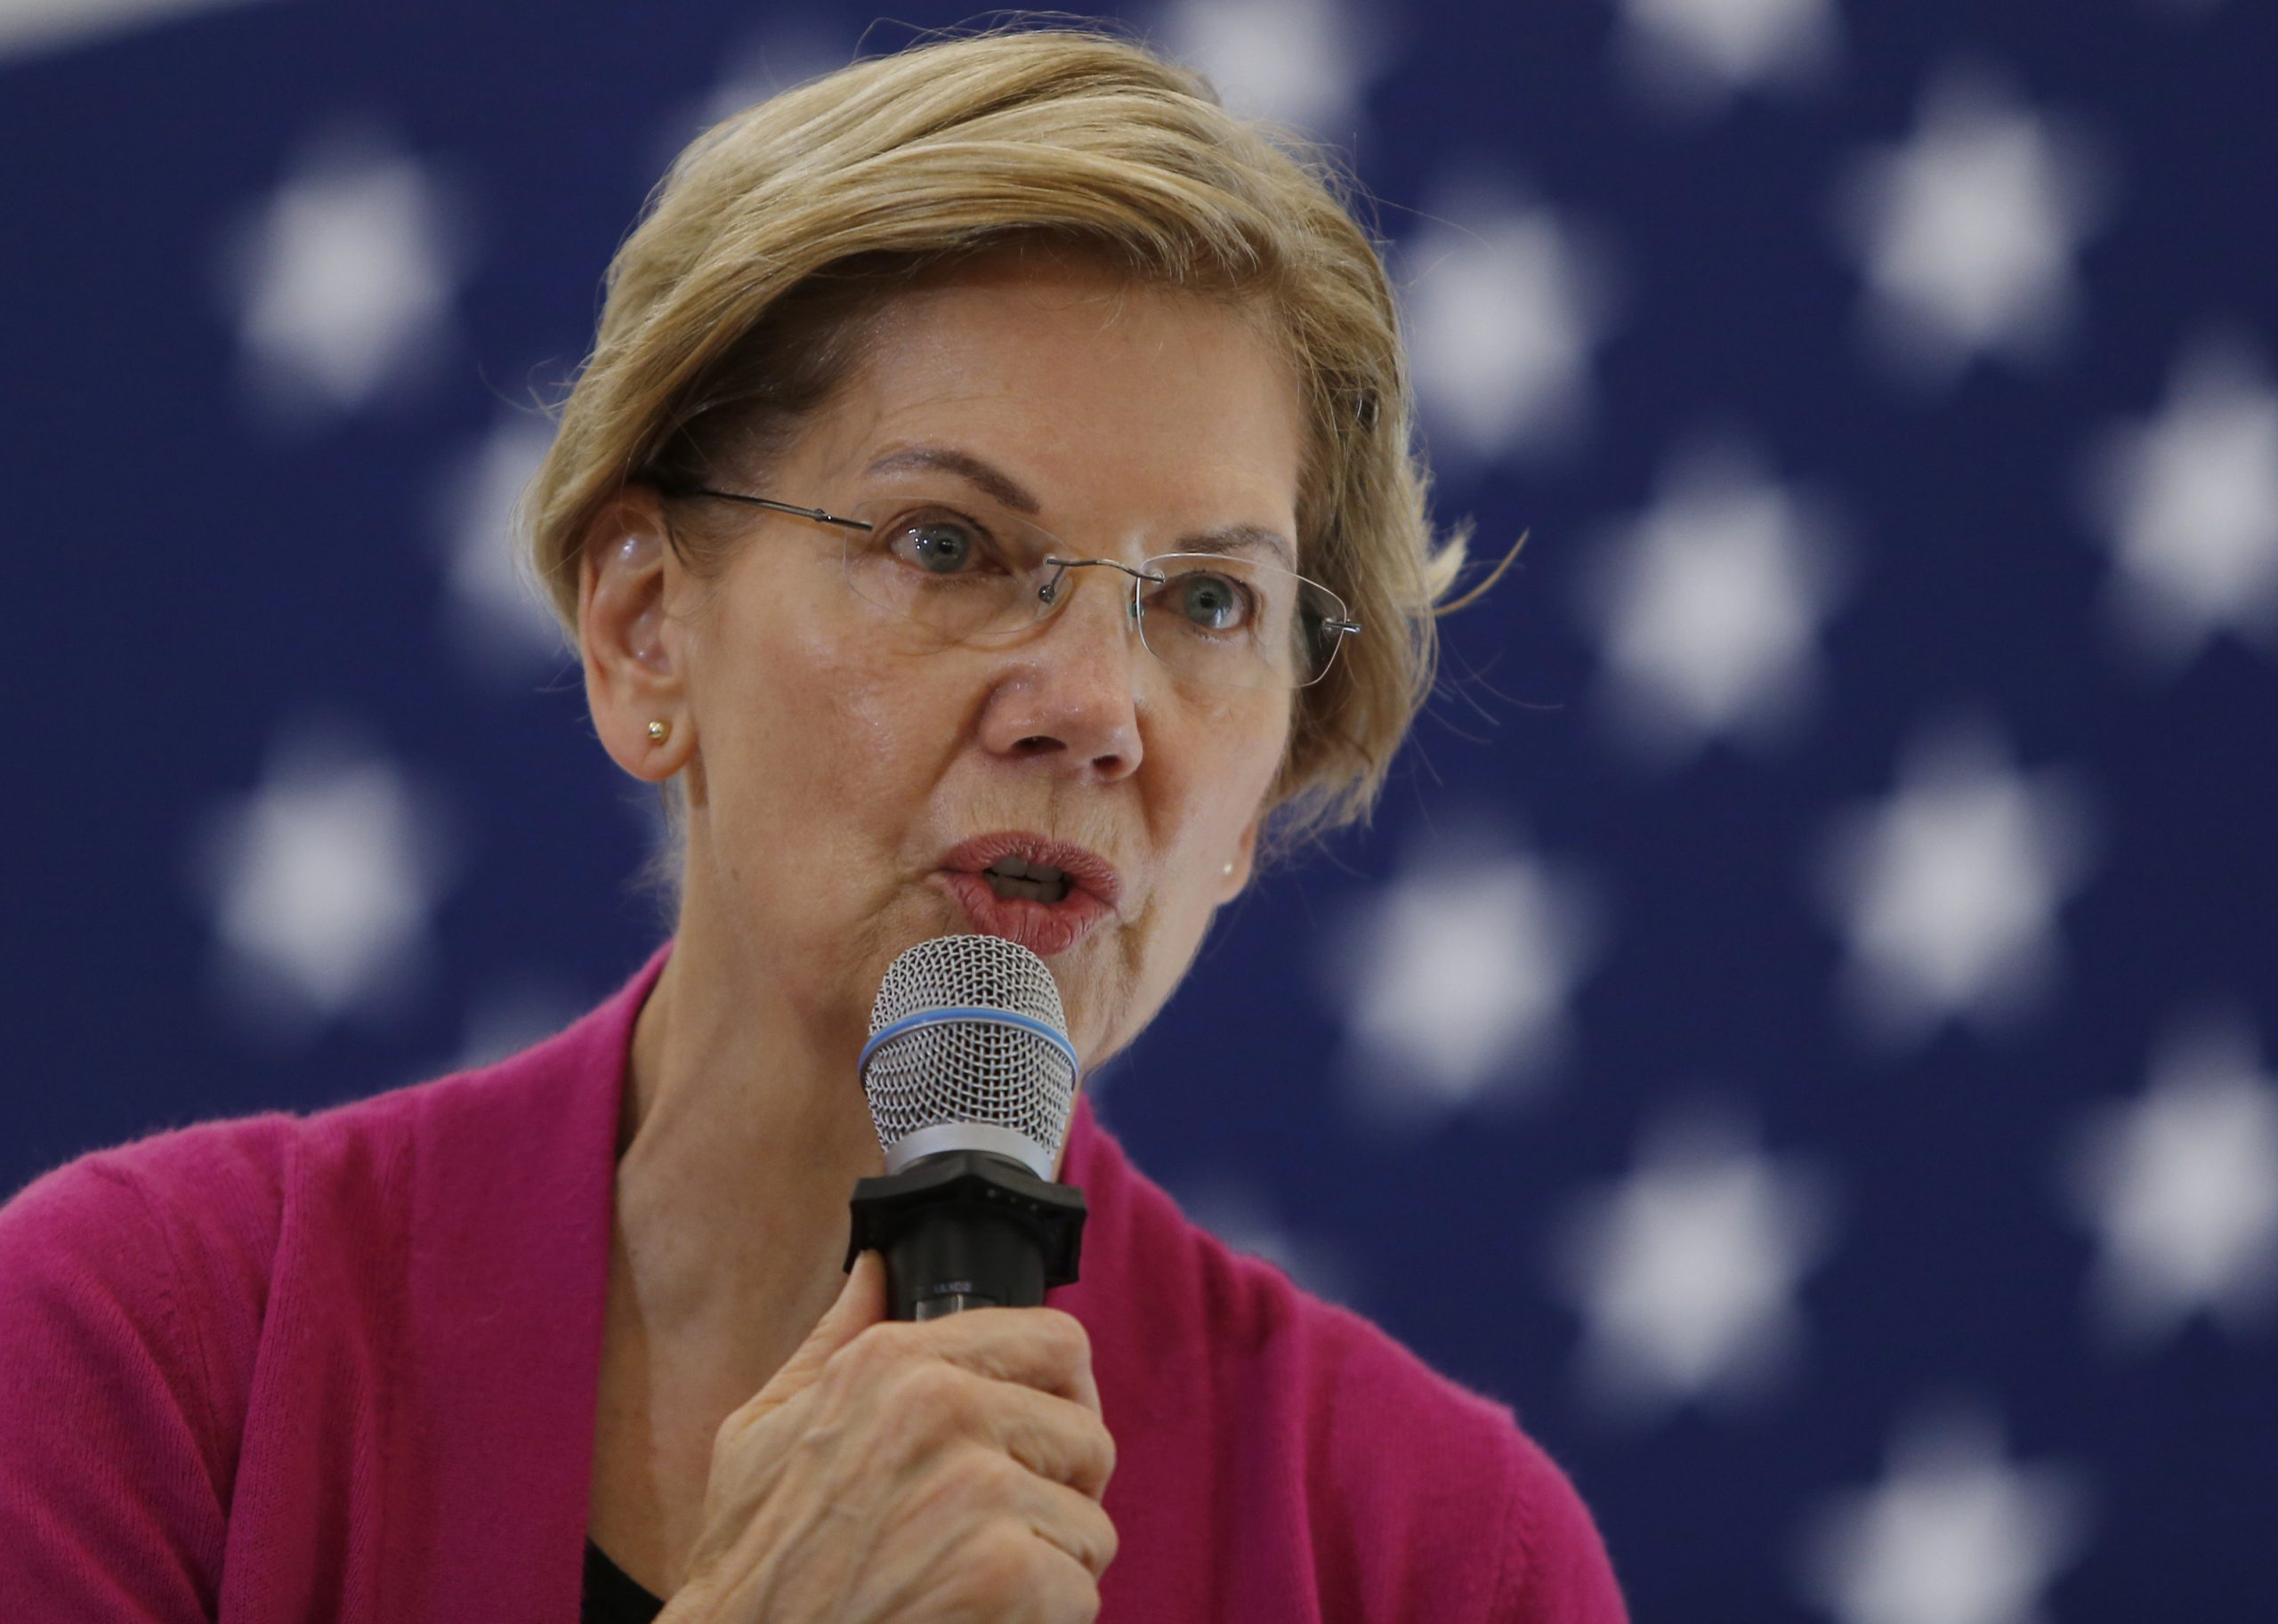 Senator and presidential candidate Elizabeth Warren speaks during a town hall at the University of New Hampshire in Durham, NH on Oct. 30, 2019.